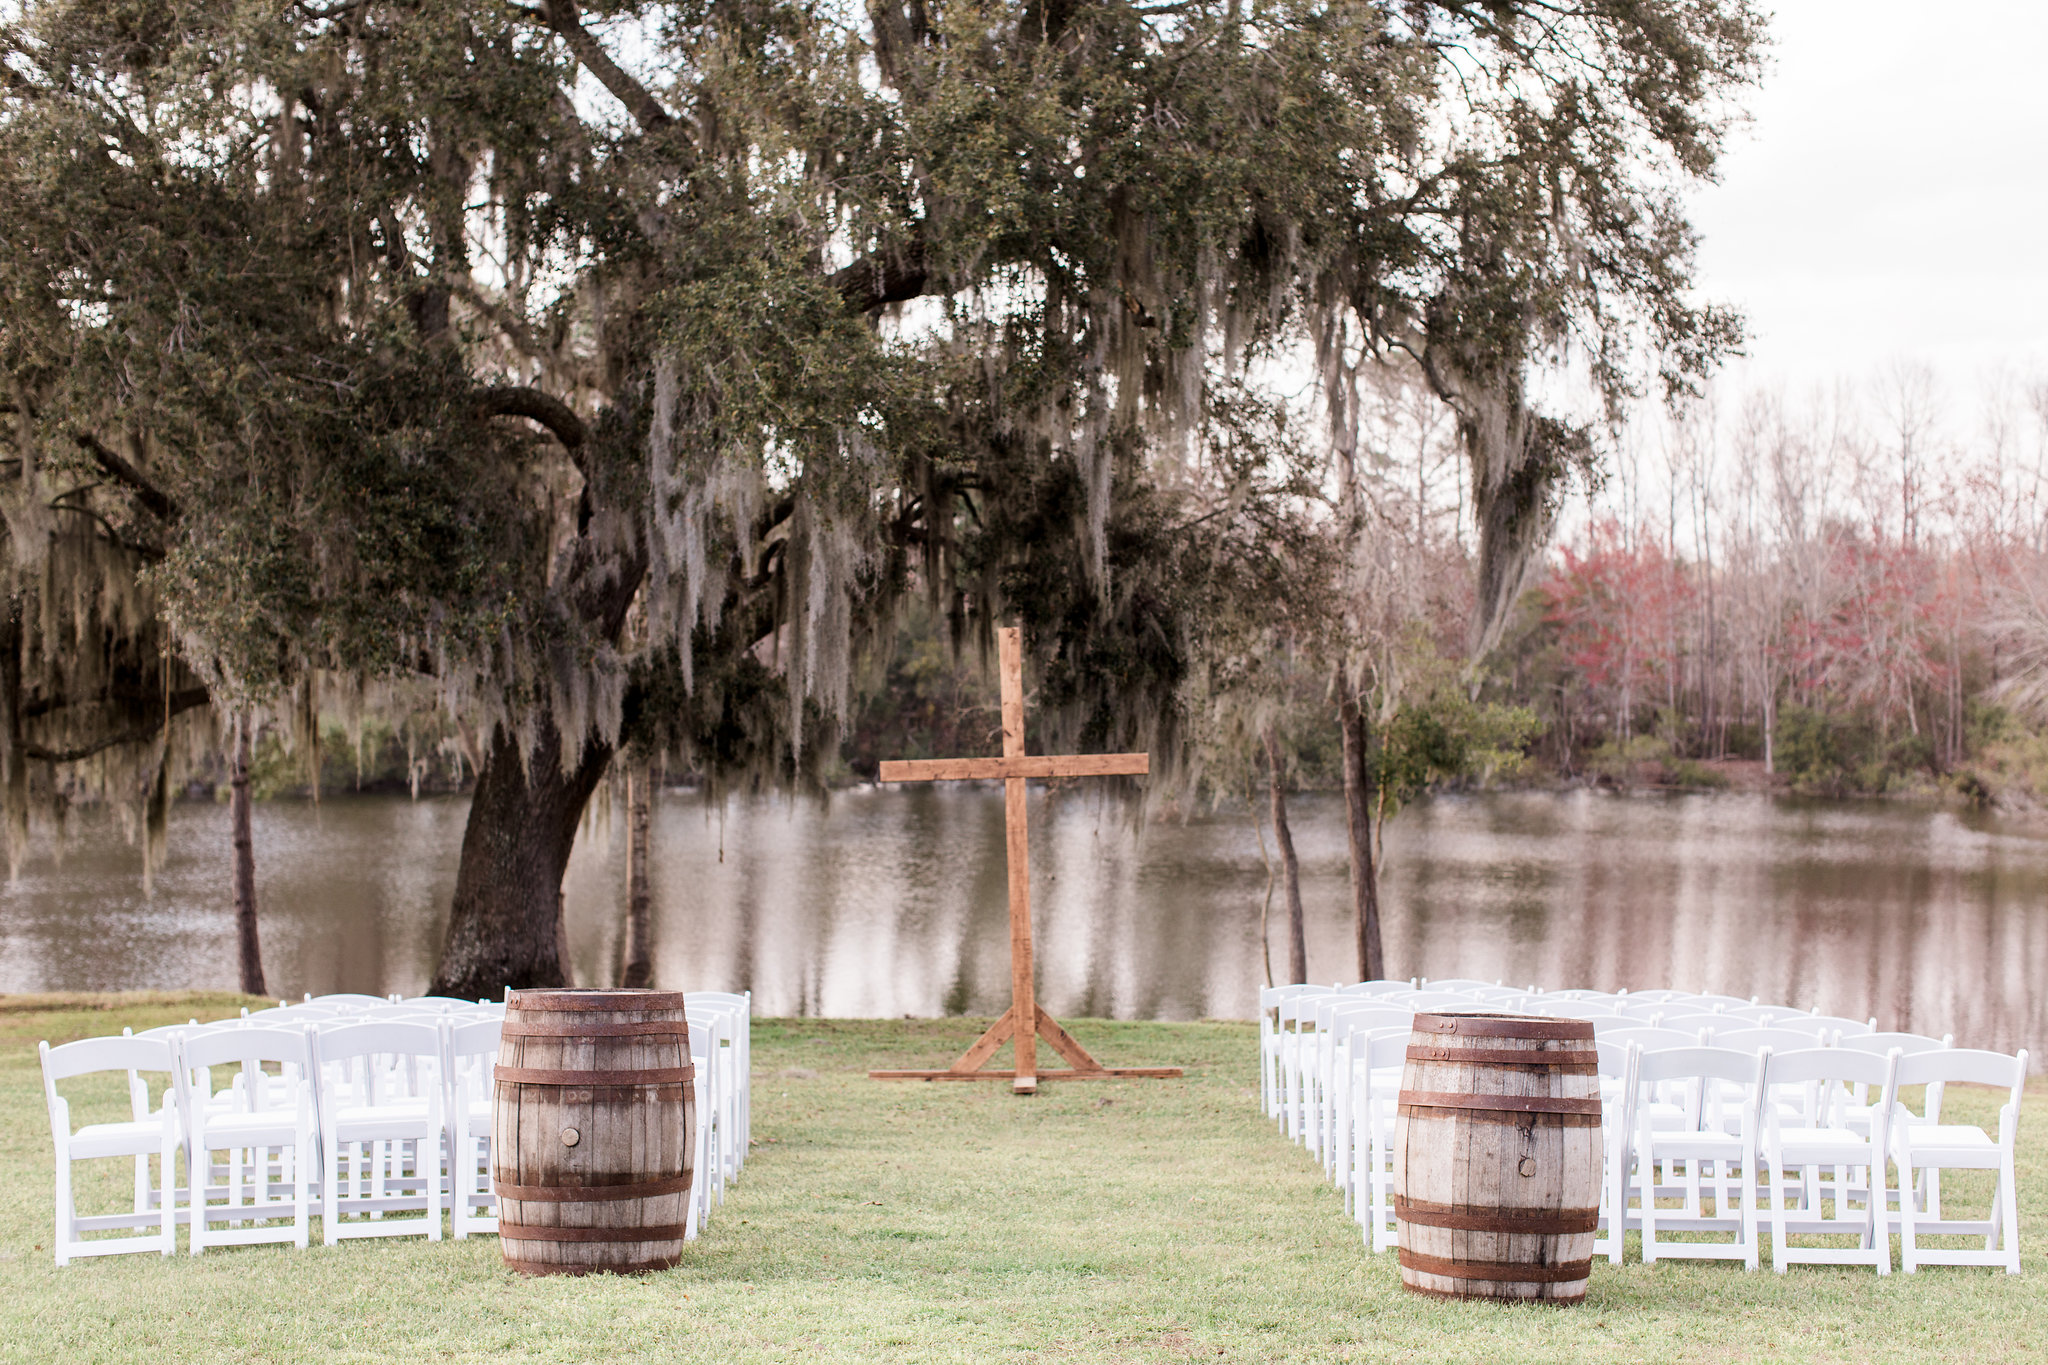 Andrea-brad-apt-b-photography-savannah-wedding-savannah-wedding-photographer-red-gate-barn-wedding-marsh-wedding-river-wedding-historic-savannah-barn-rustic-wedding-18.JPG